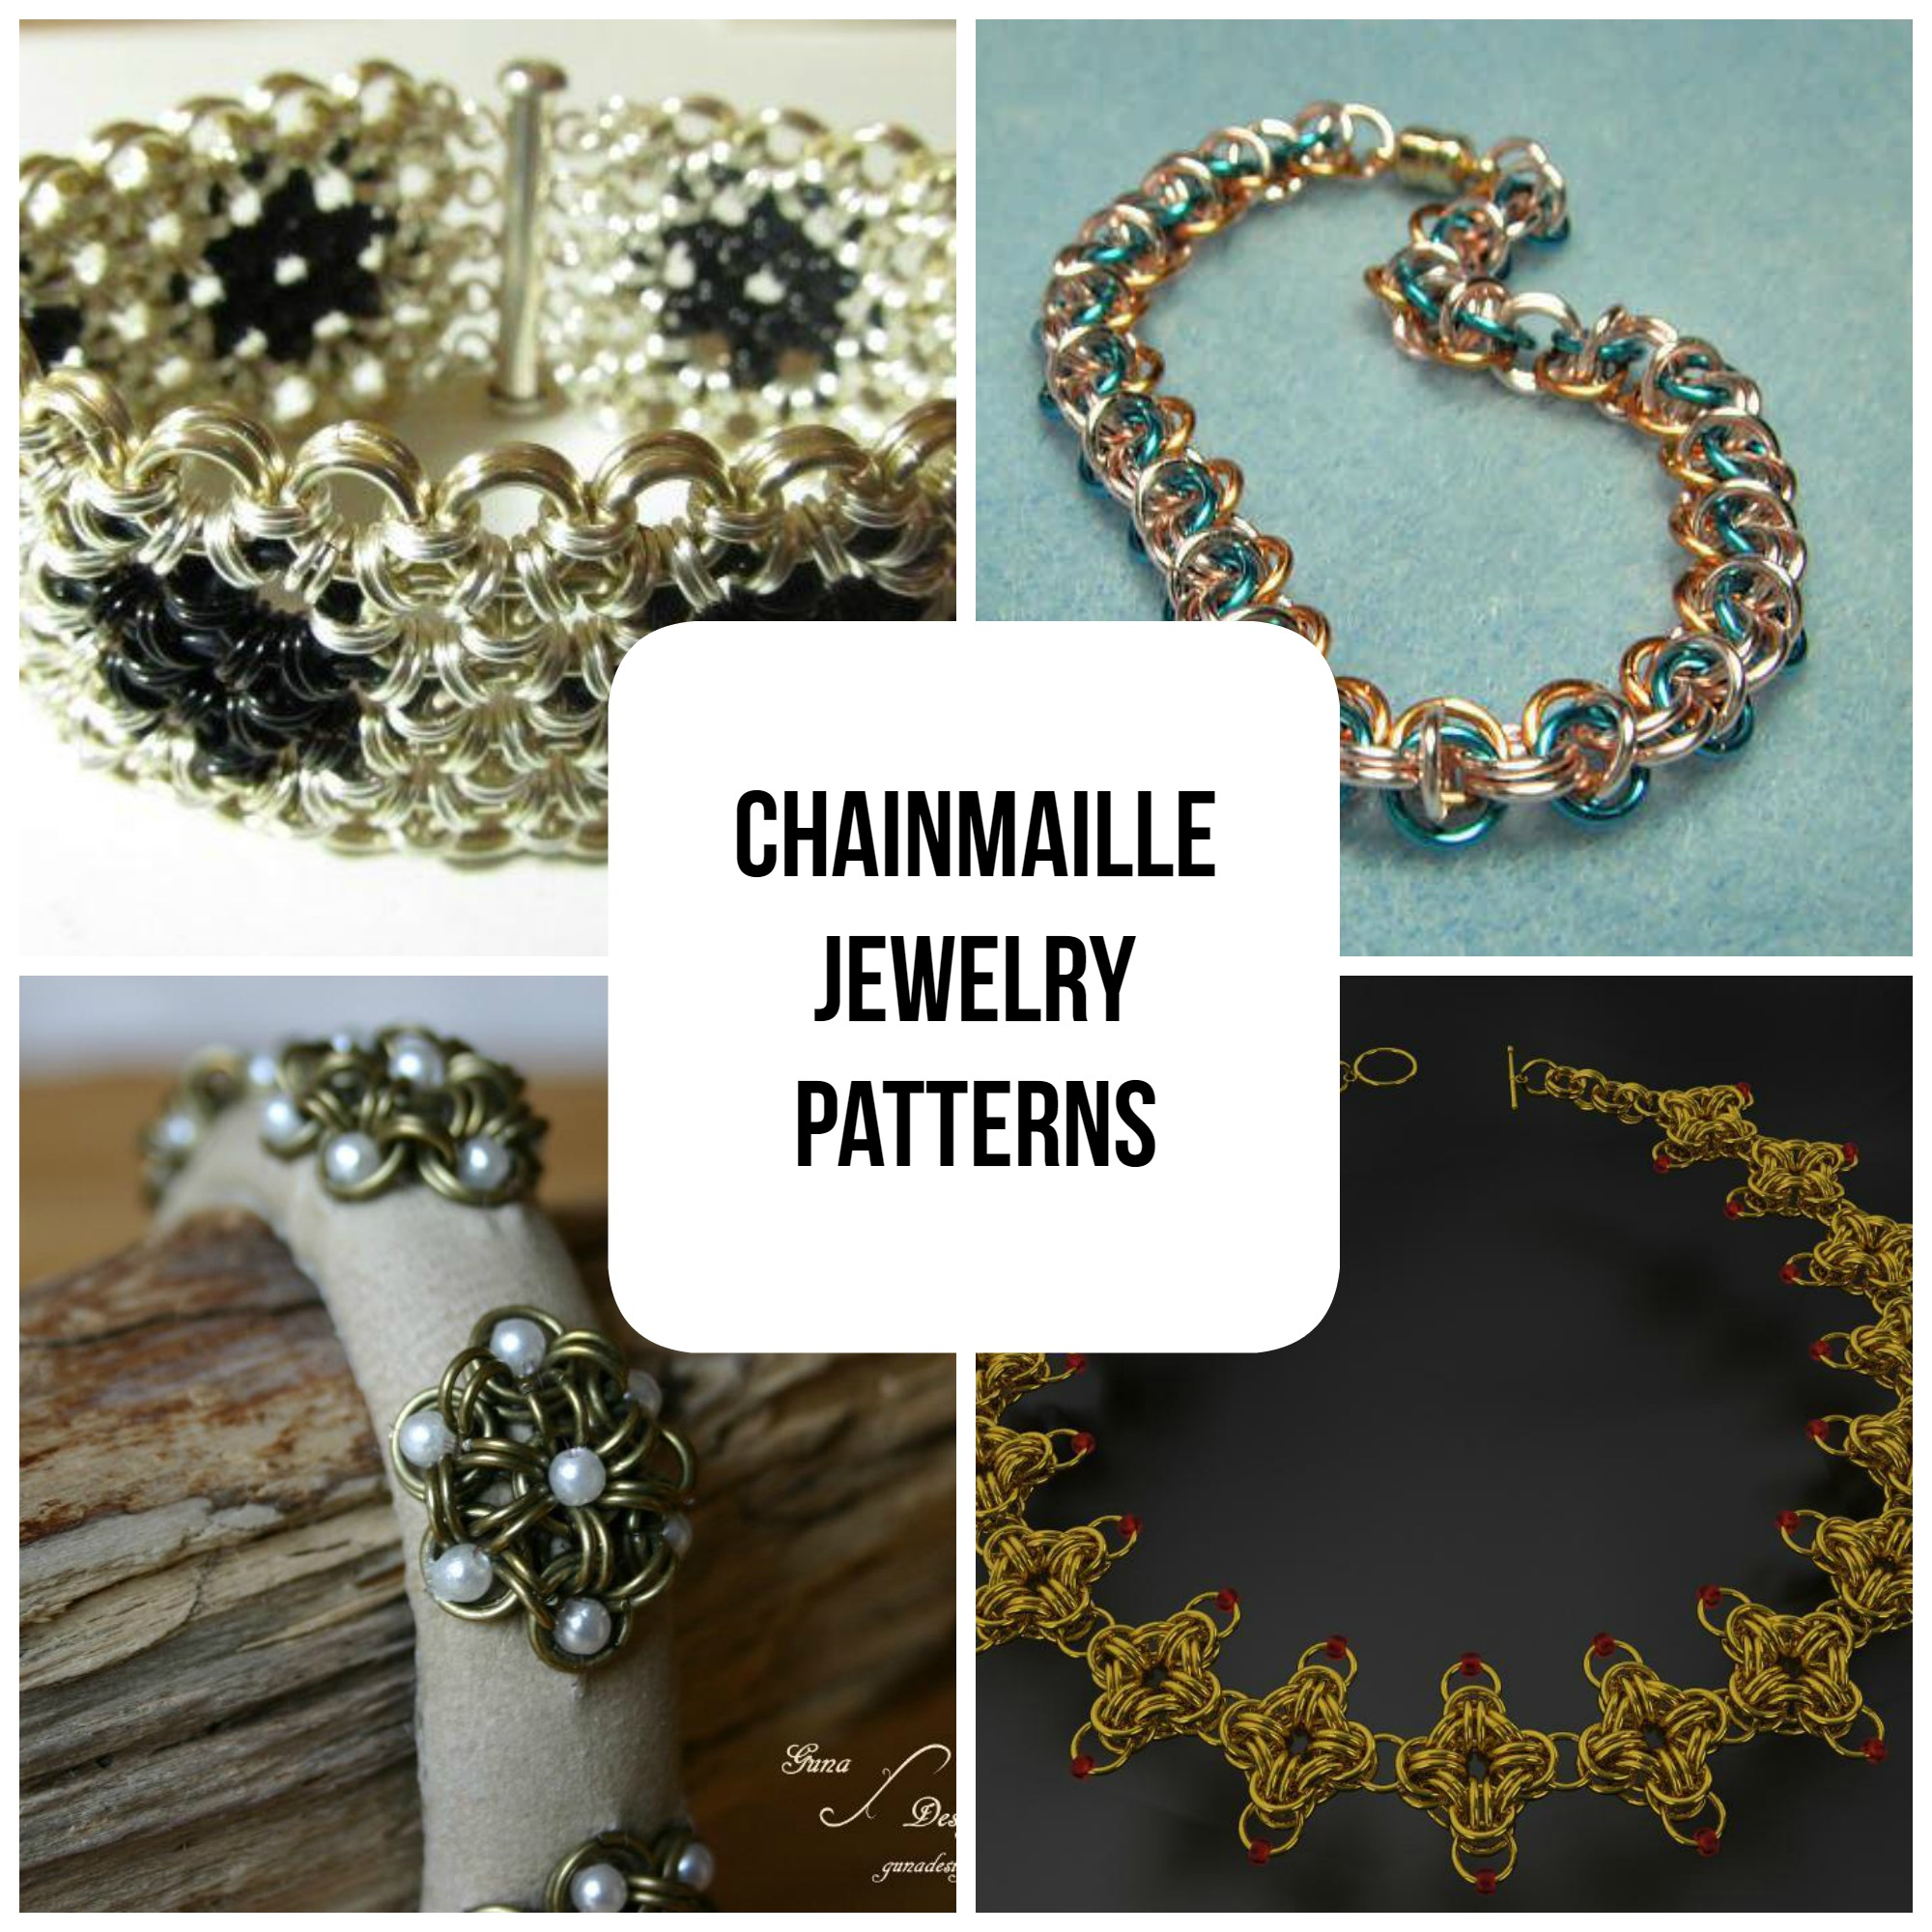 Chainmaille Jewelry Patterns